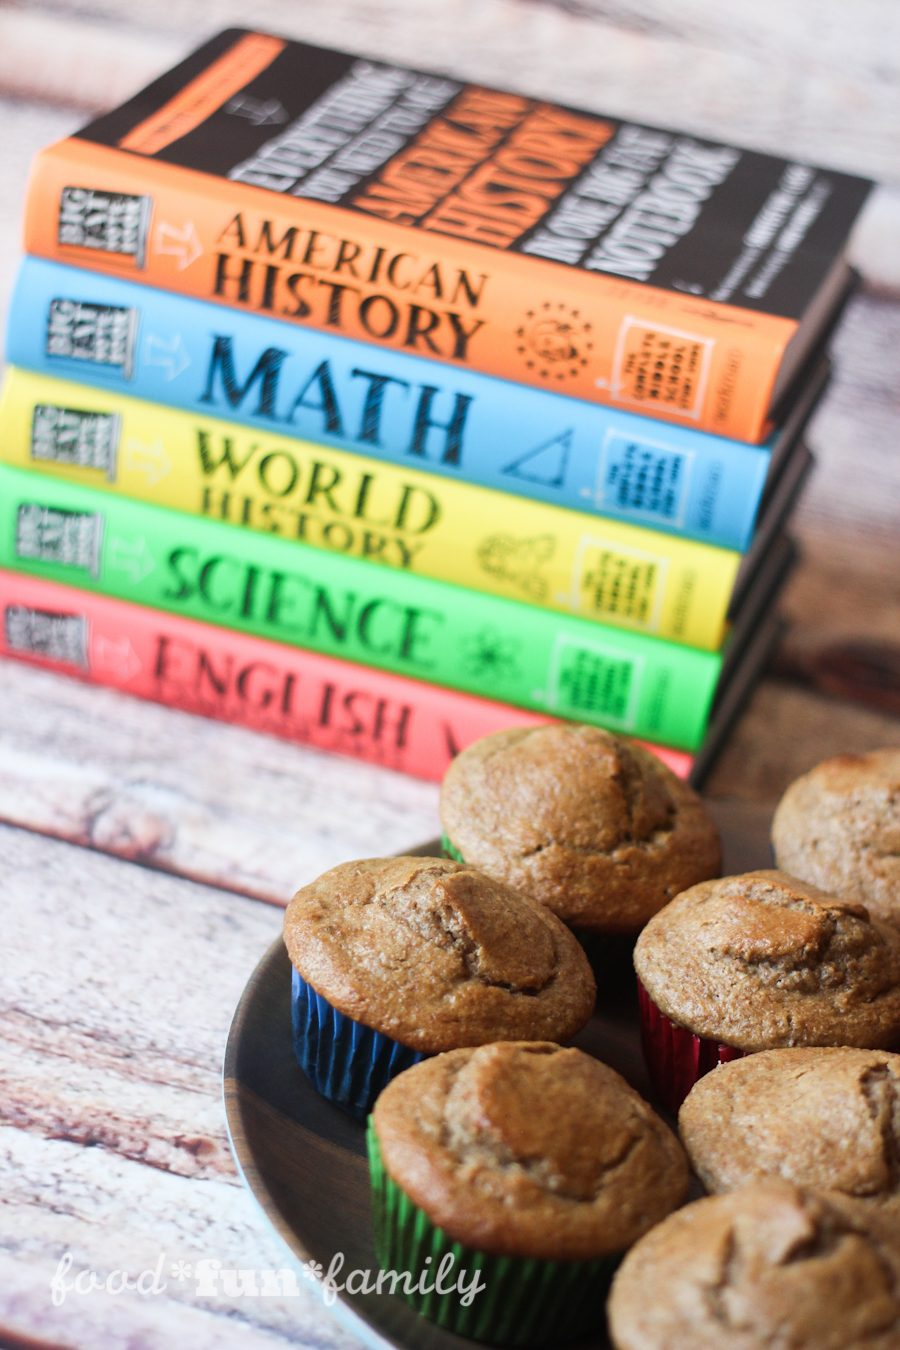 Banana Bran Muffins - the perfect after-school fuel for study time